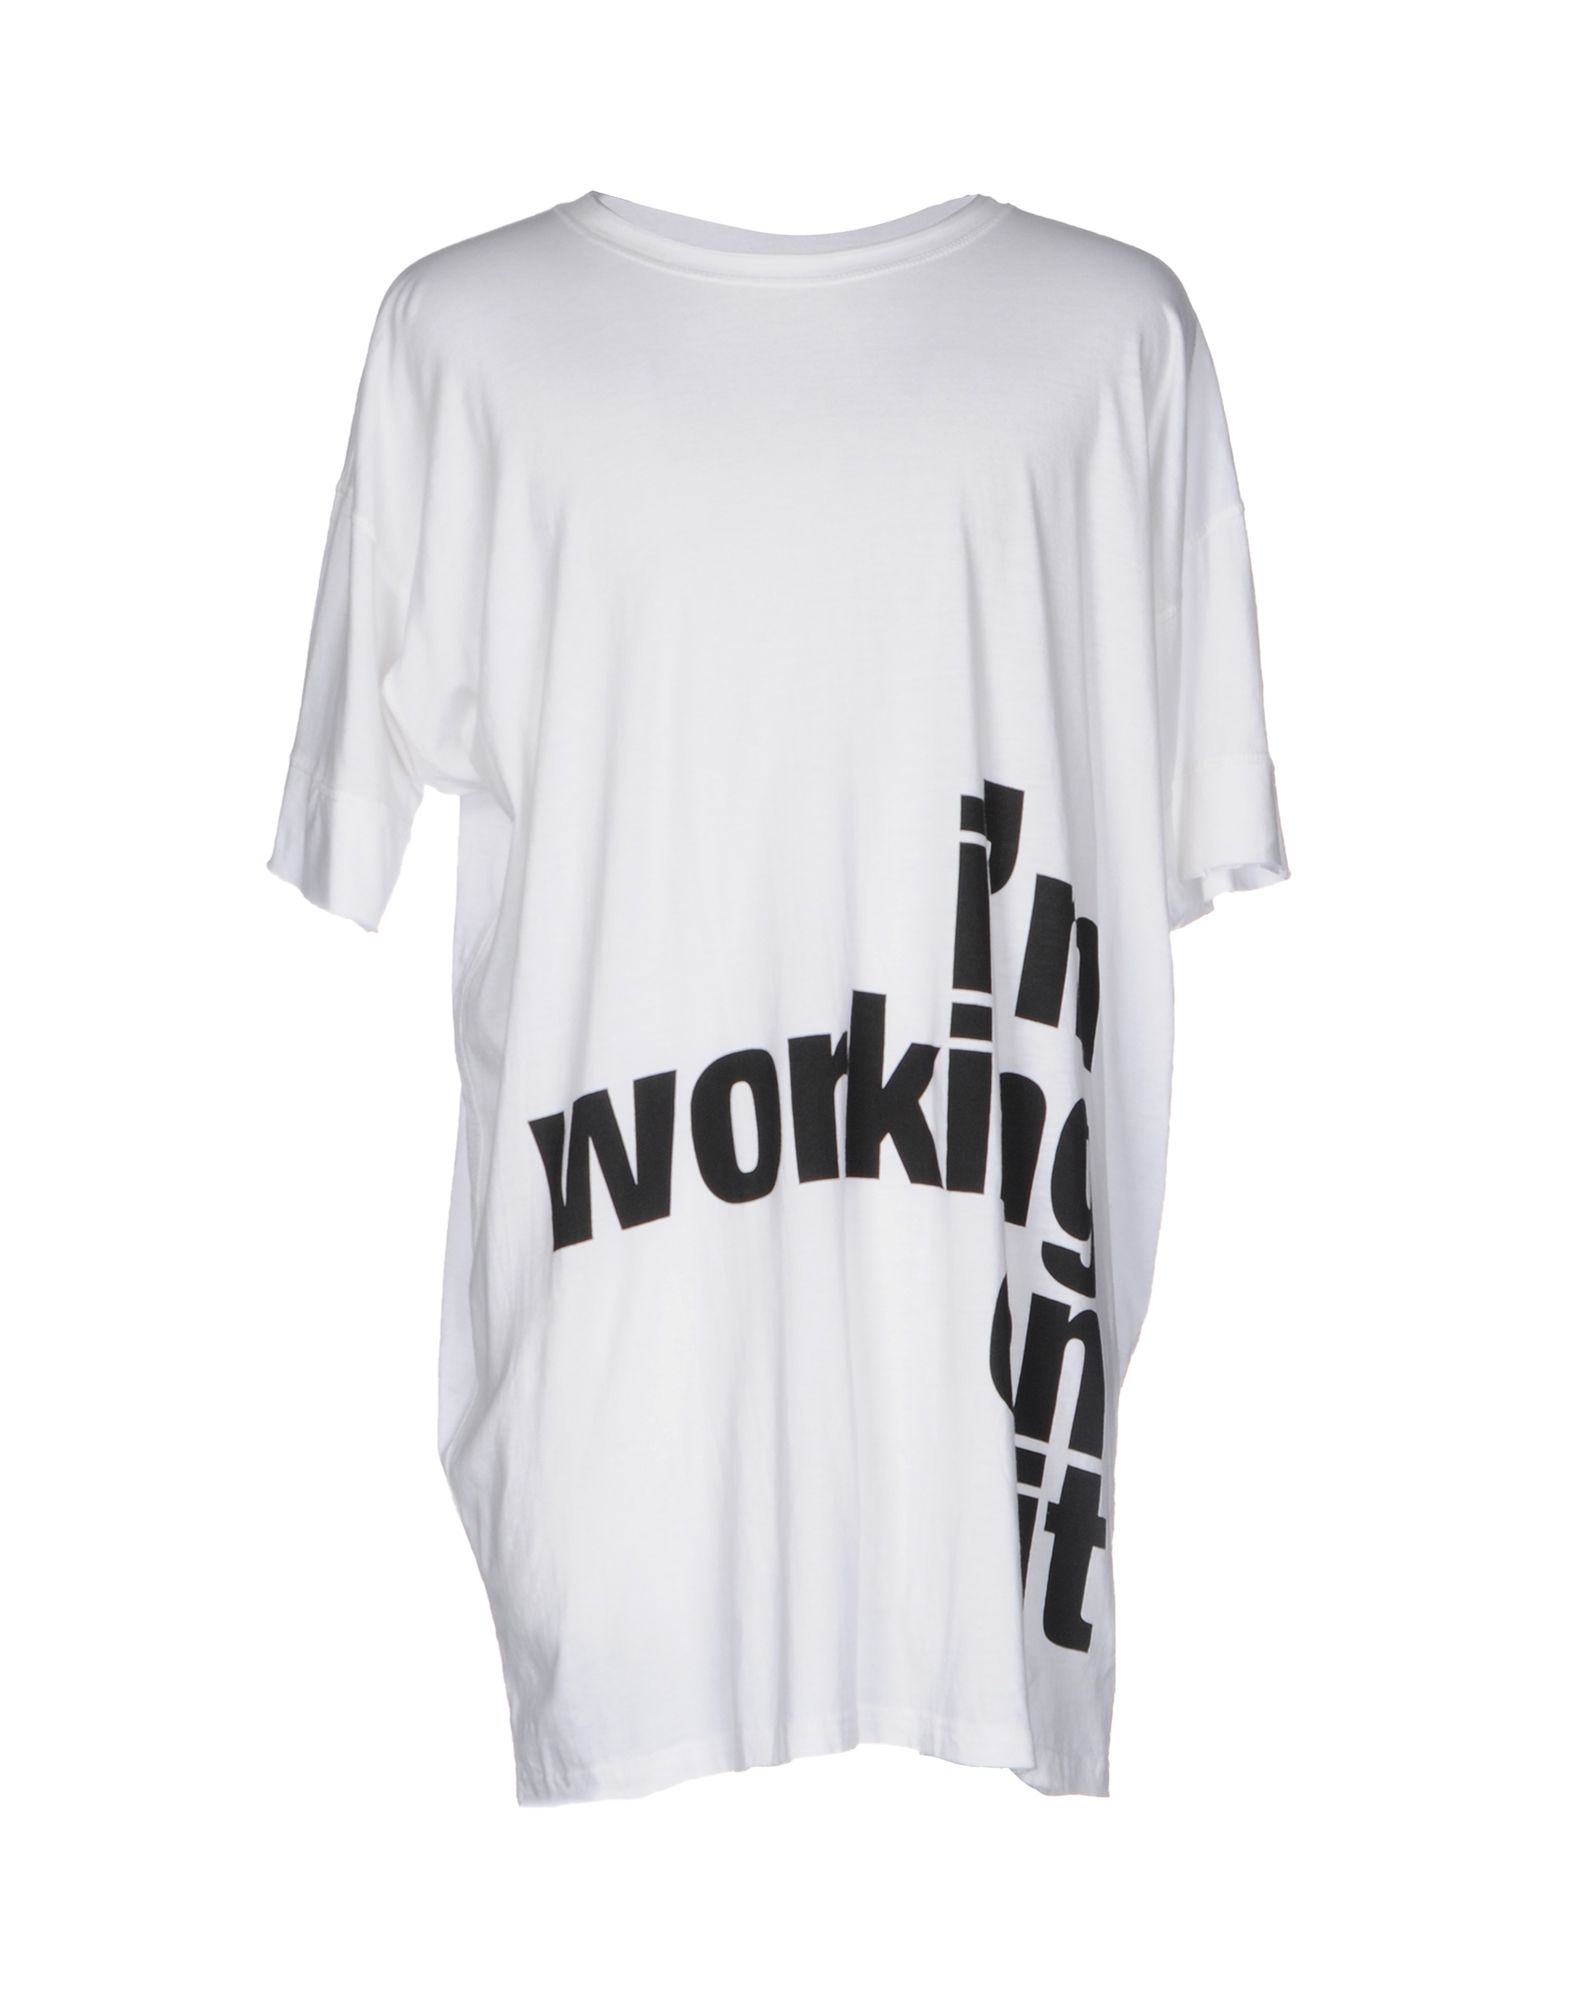 T-Shirt Barbara I Gongini Uomo - Acquista online su